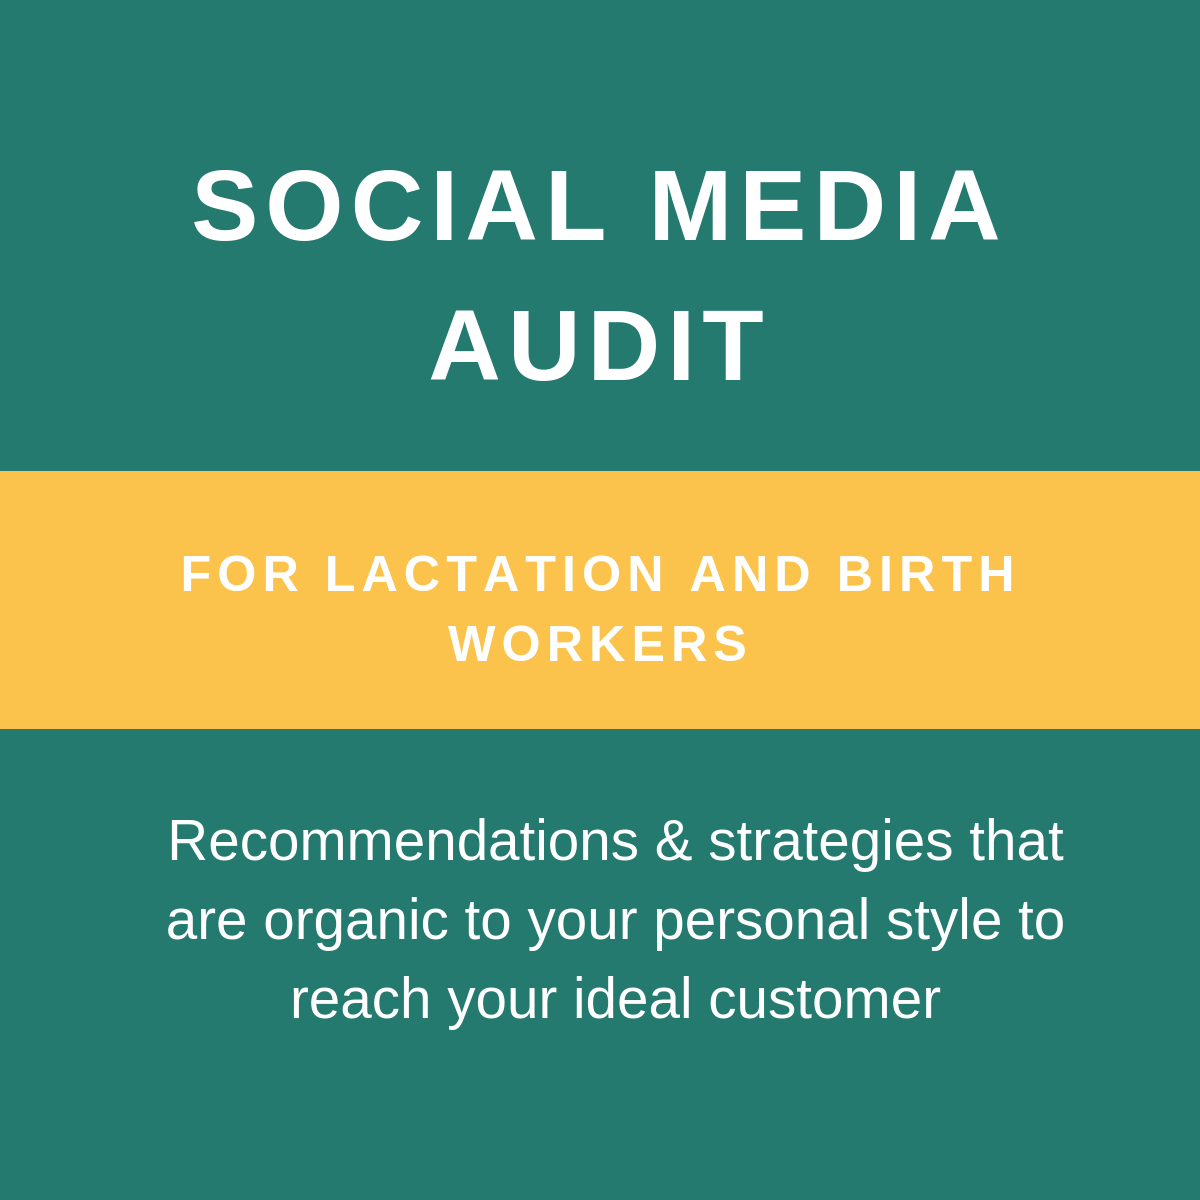 Social Media Audit - Looking for guidance on making your social media platforms work for your private practice goals and your audience? Social media expert Tiara Caldwell LPN, IBCLC is here to help!